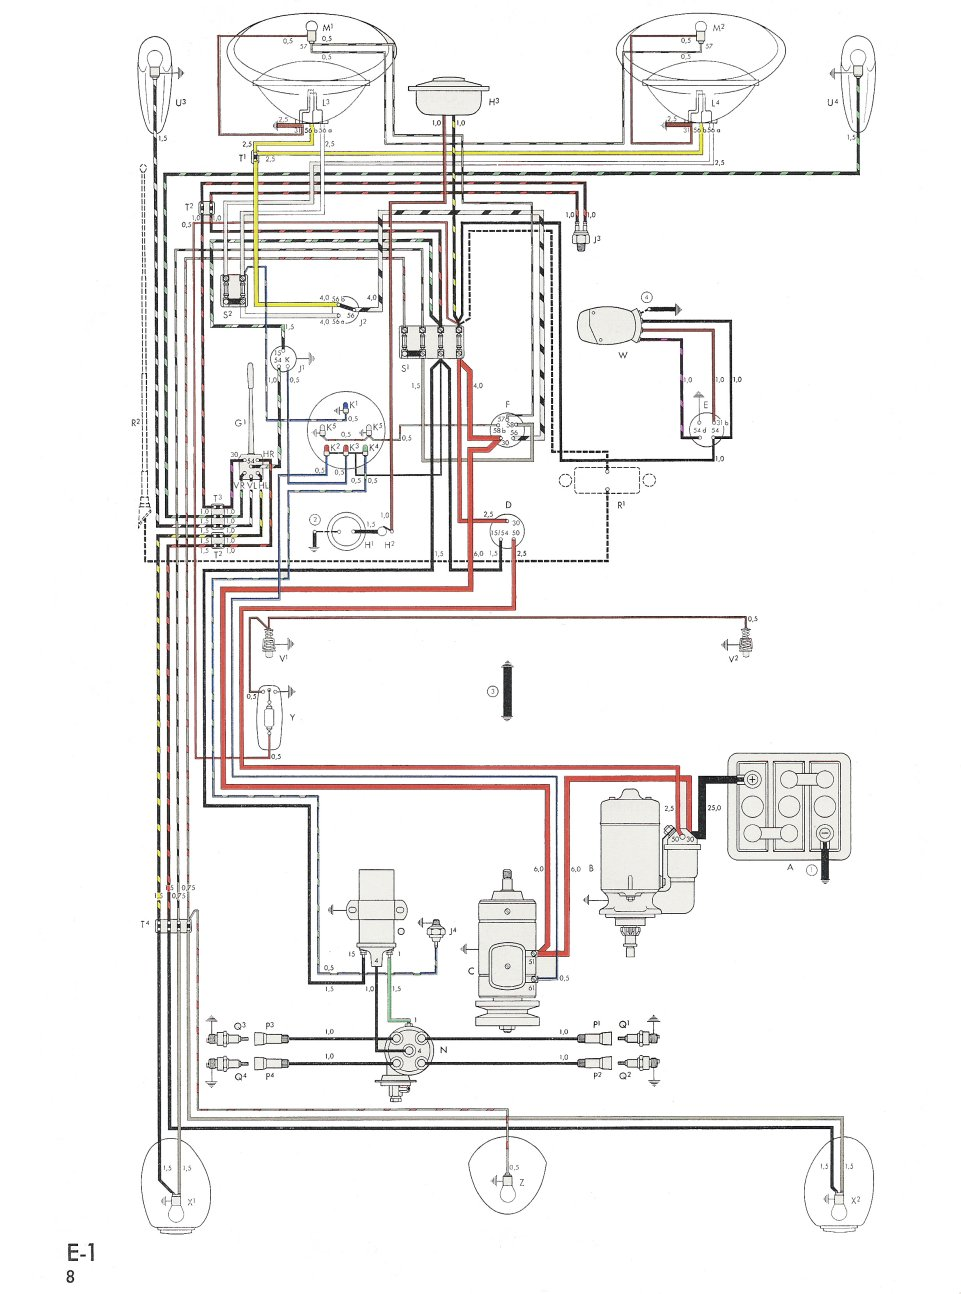 V Charger further Bus Wiring further Vw Beetle Ignition Switch Wiring Diagram Vw Wiring Diagram Wiring Diagrams Chevy Corvette Wiring Diagram Vw Beetle Wiring Diagram F moreover Ls Alternator Wiring Simple Schema Best Of Denso Diagram further Bug Usa. on 1968 vw beetle alternator wiring diagram